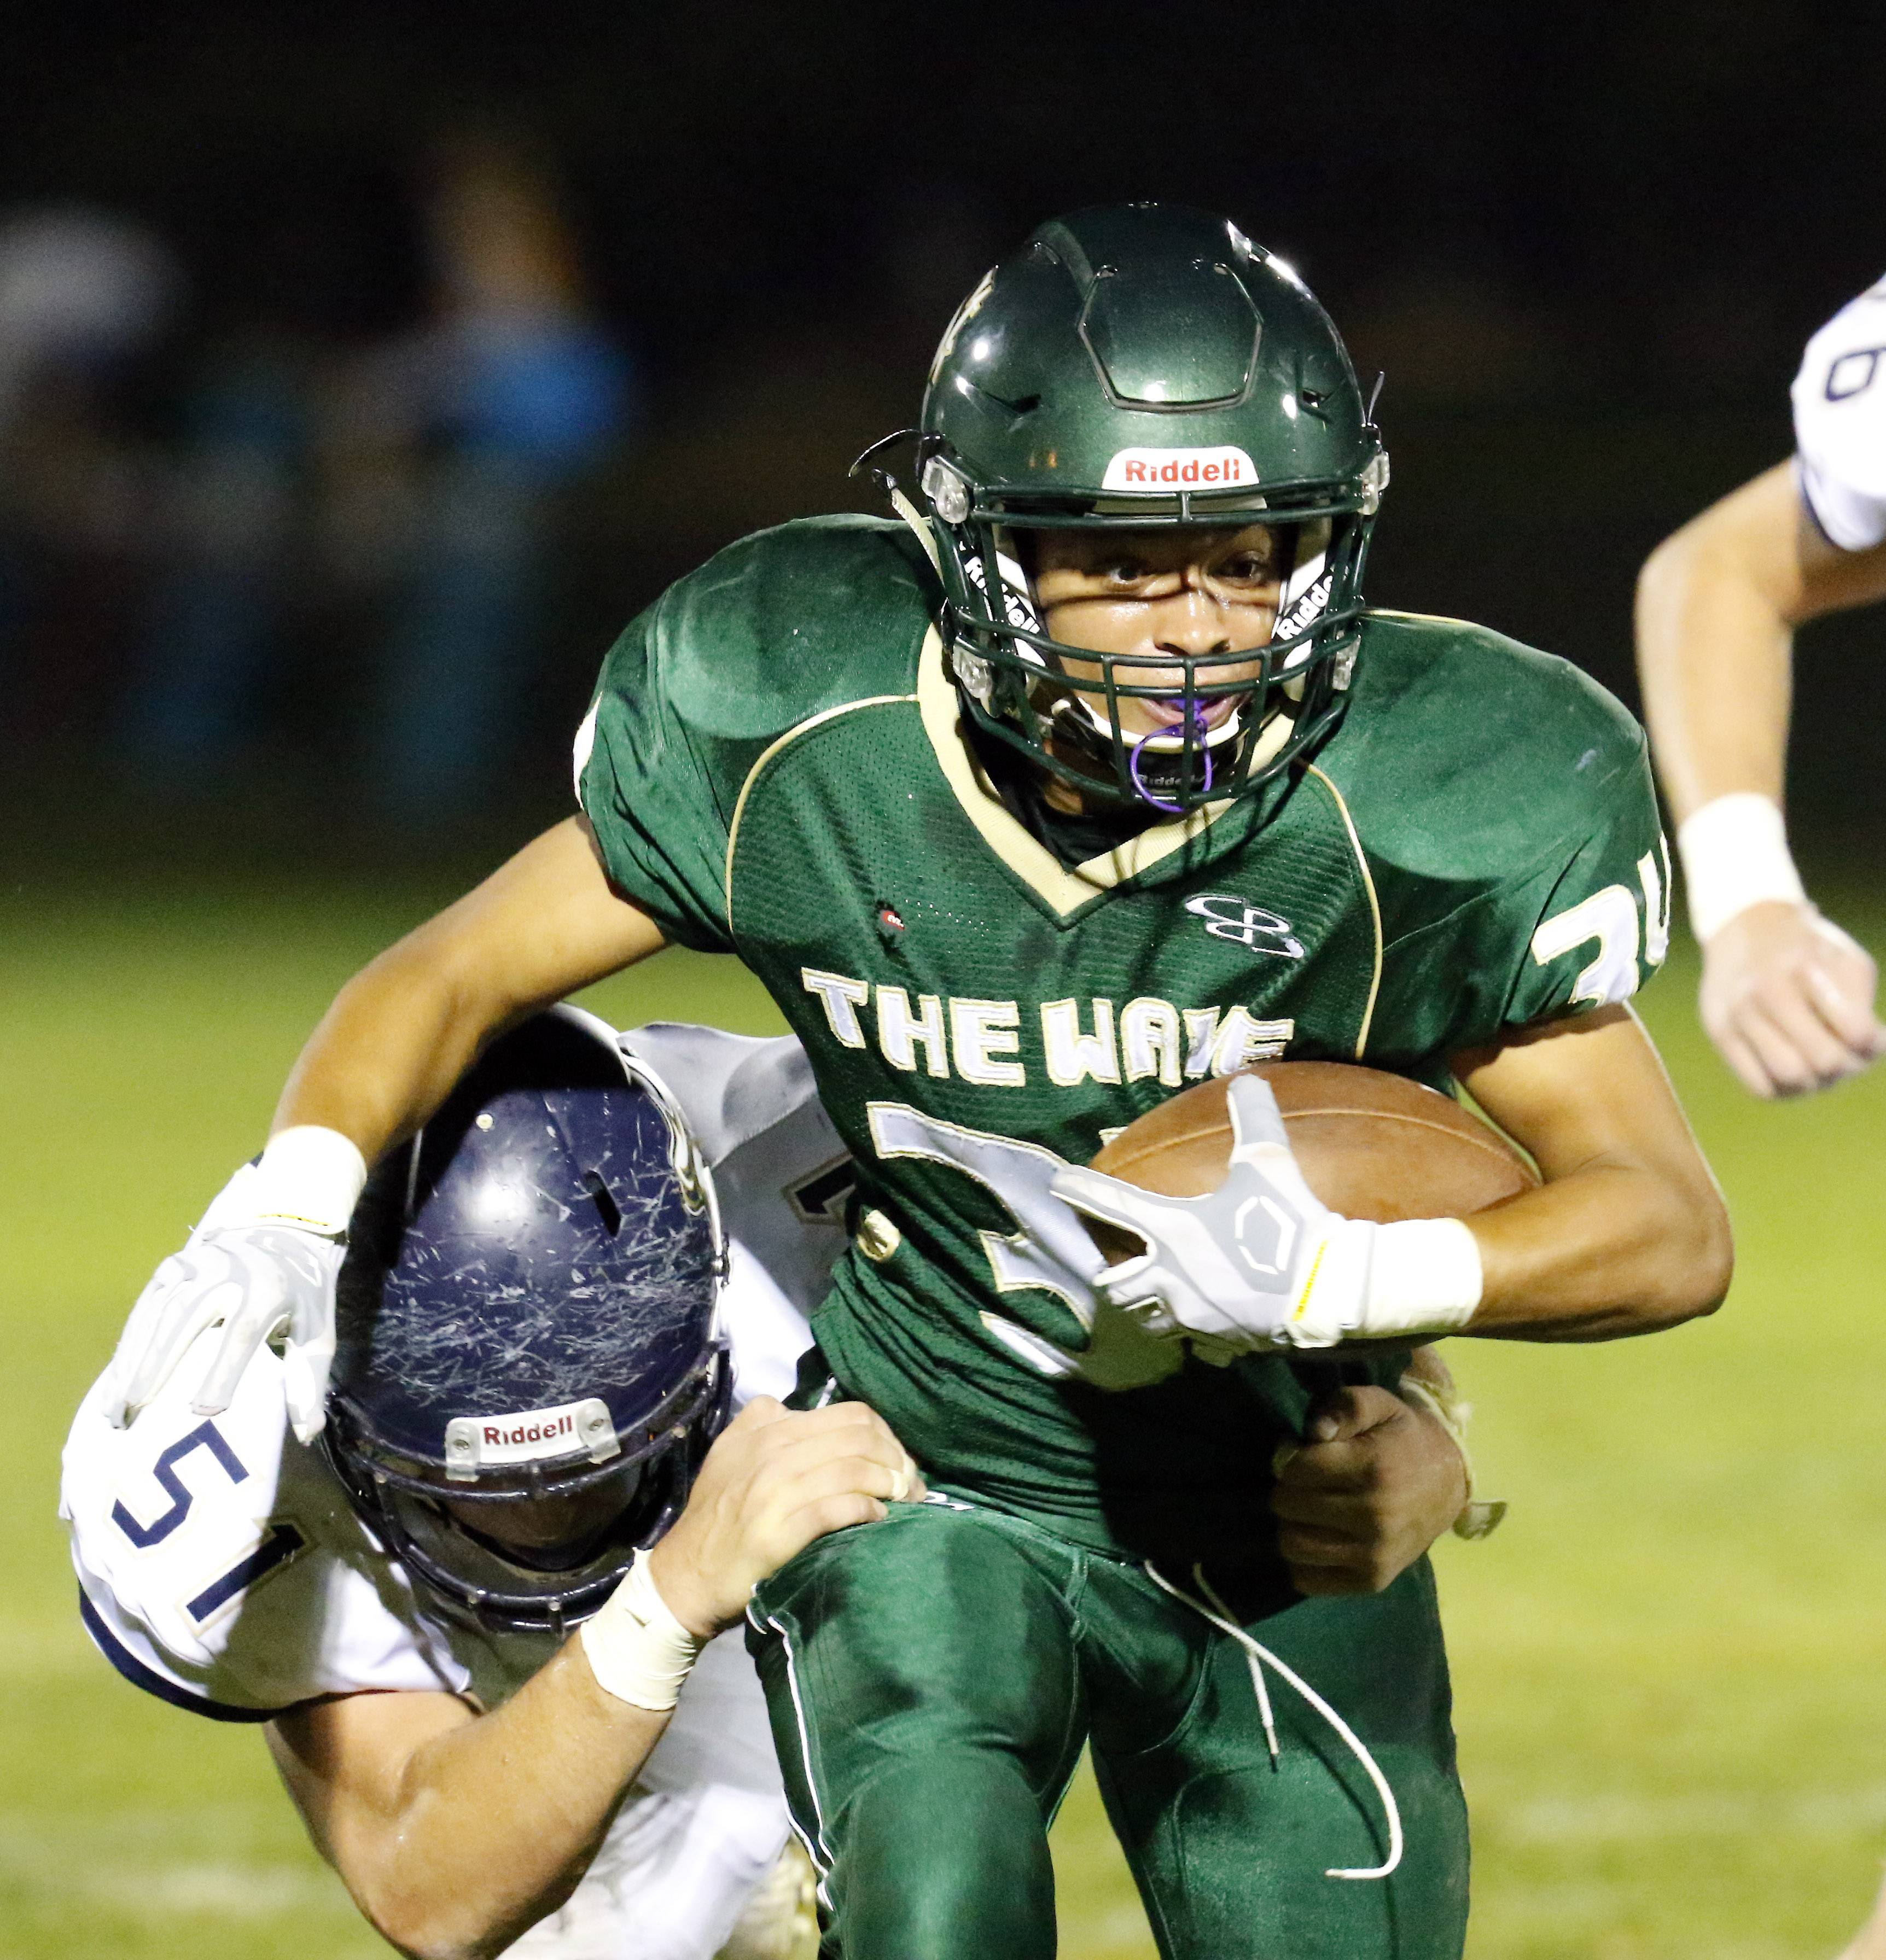 St. Edward's Daniel Falco is wrapped up by IC Catholic's Dylan Packer at Greg True Field in Elgin Friday night.